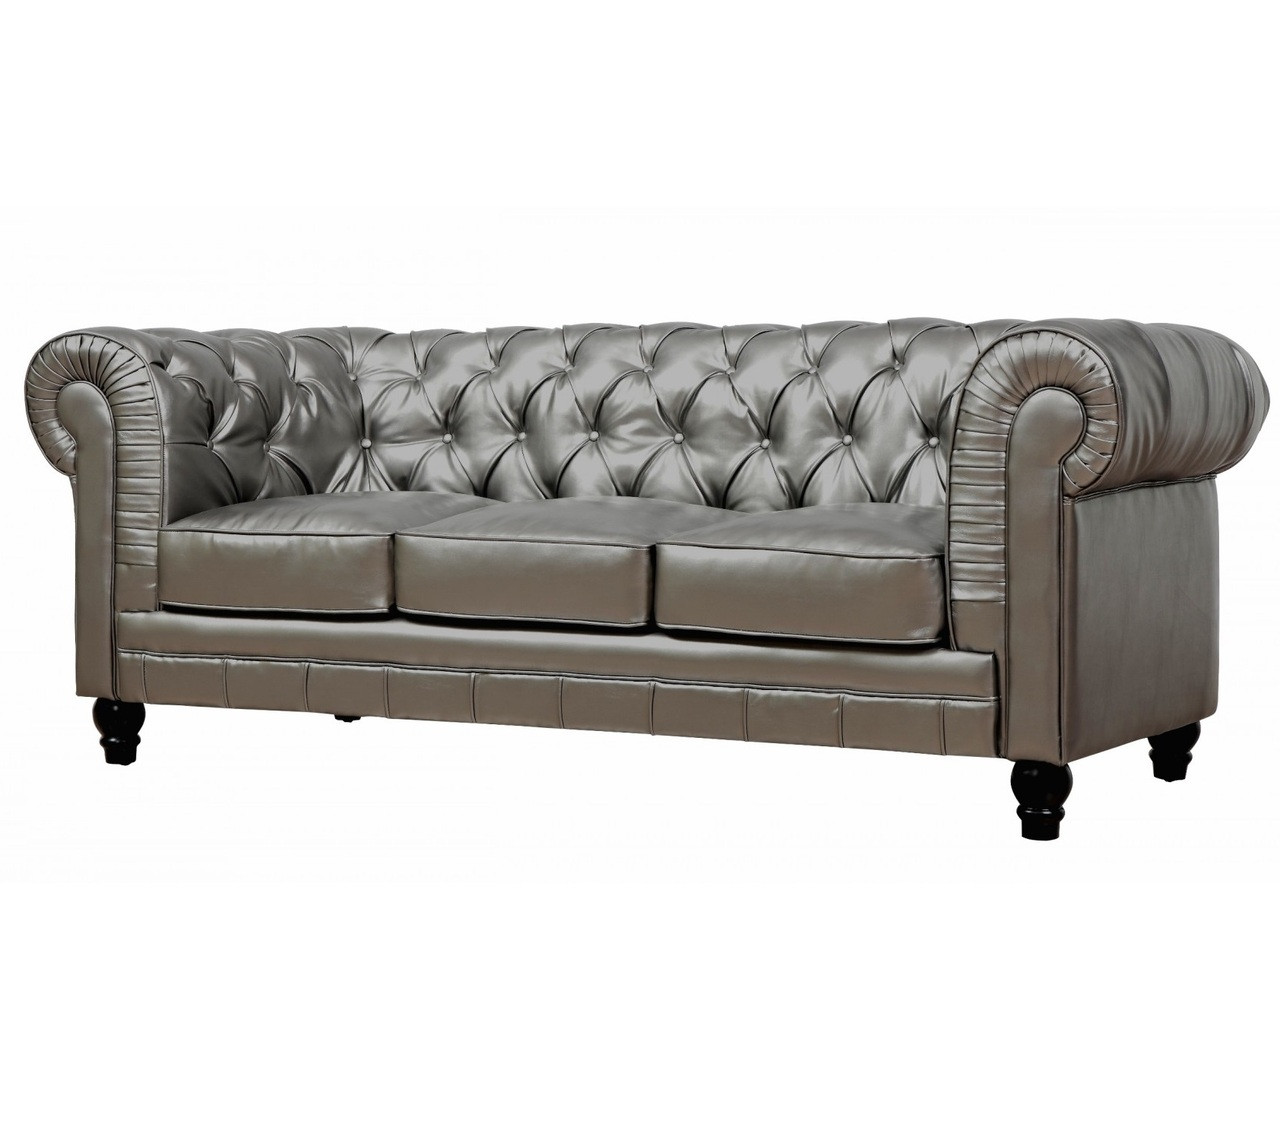 Zahara Silver Leather Tufted Chesterfield Sofa